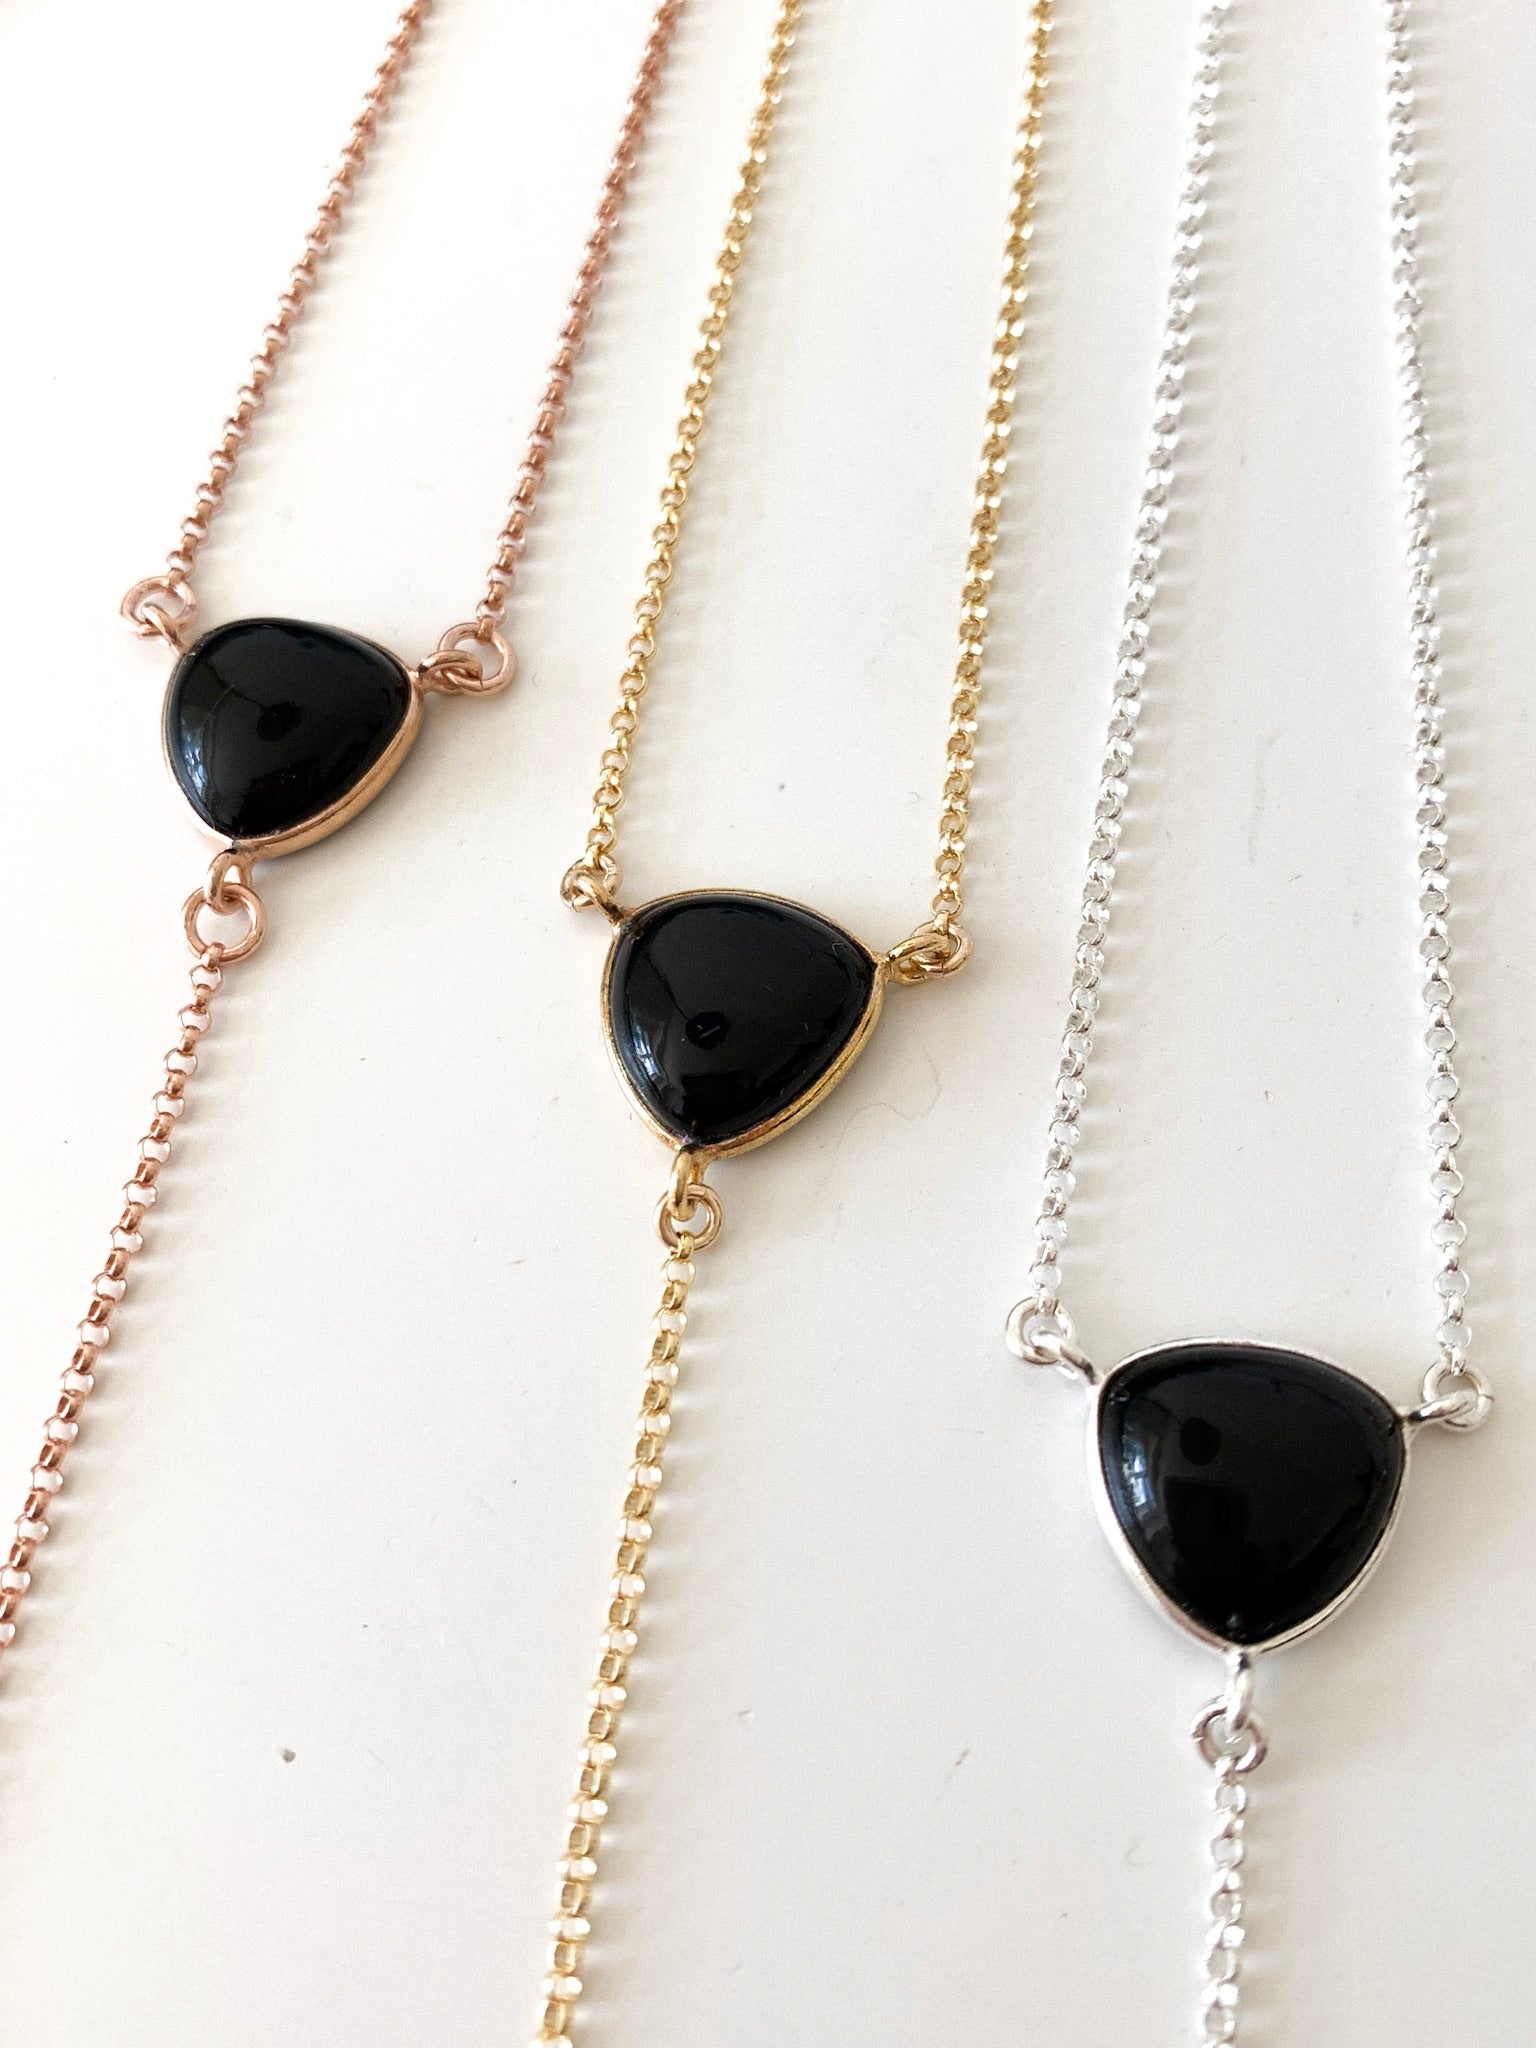 three black onyx stone lariats with rose gold, gold and silver chain options